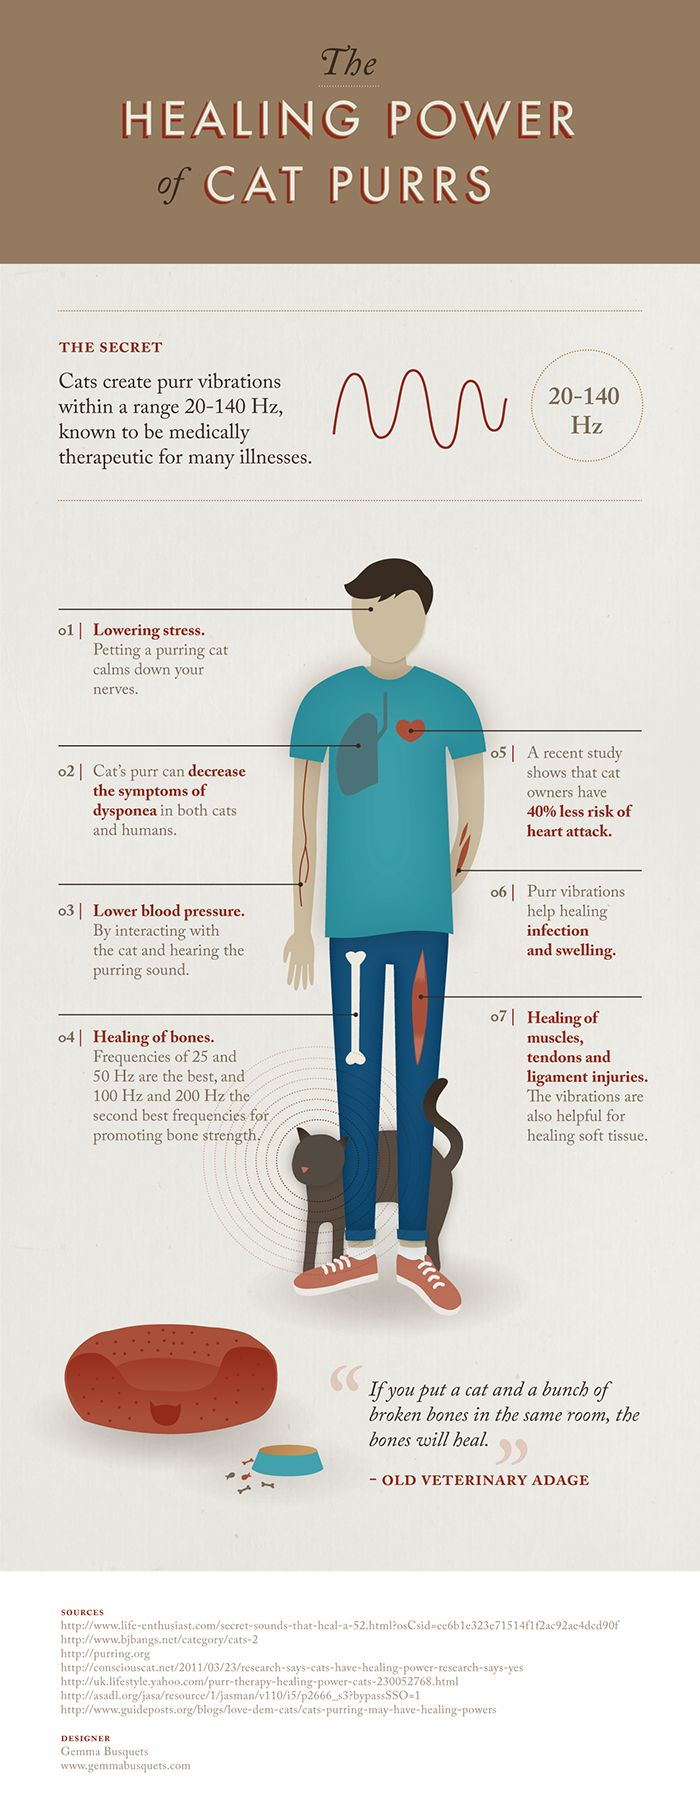 the healing power of cat purrs infographic by gemma busquets